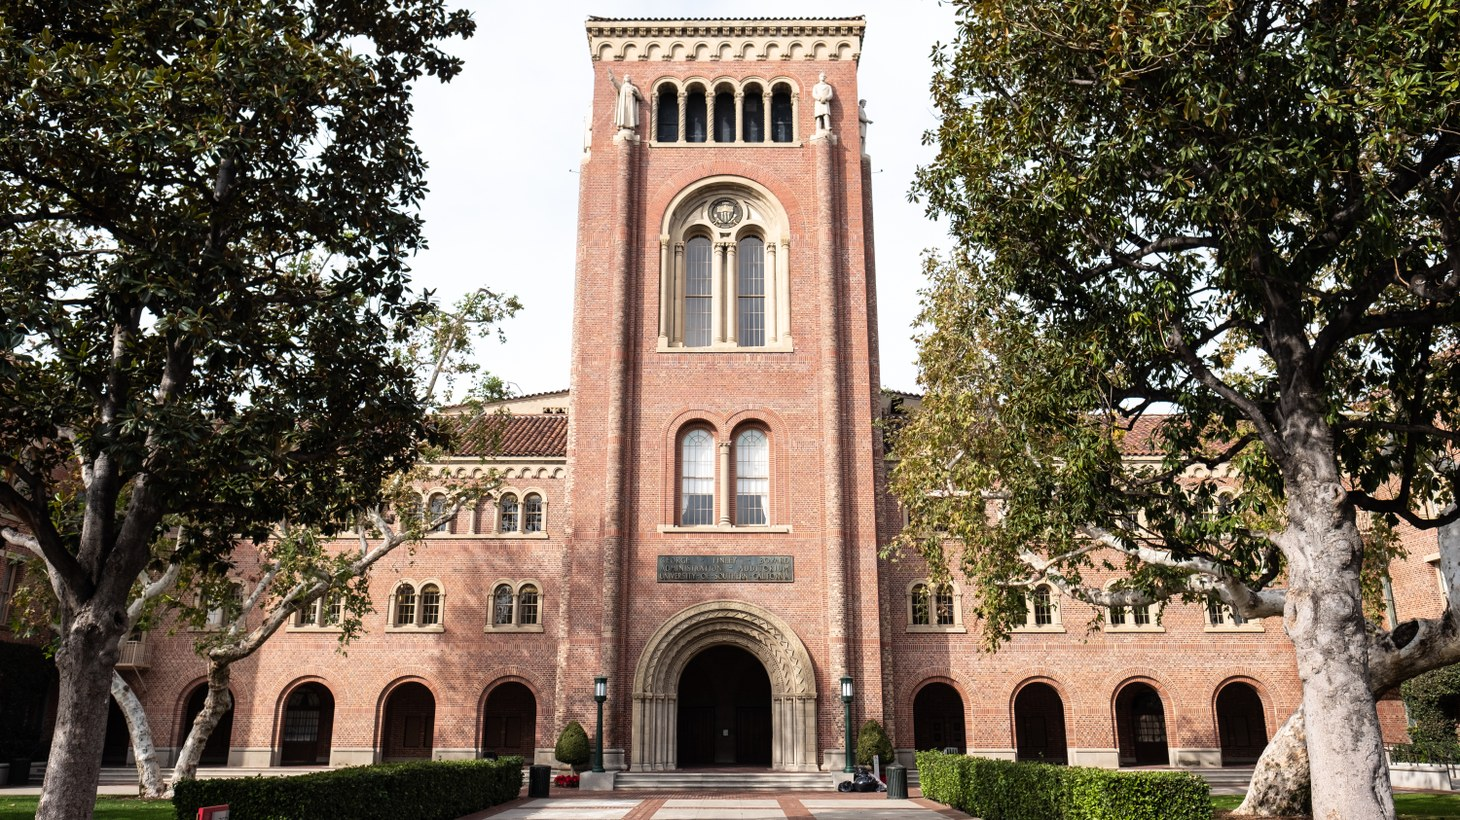 USC's Bovard Auditorium. If colleges don't offer in-person instruction this fall, international students must leave the country, according to U.S. Immigration and Customs Enforcement.